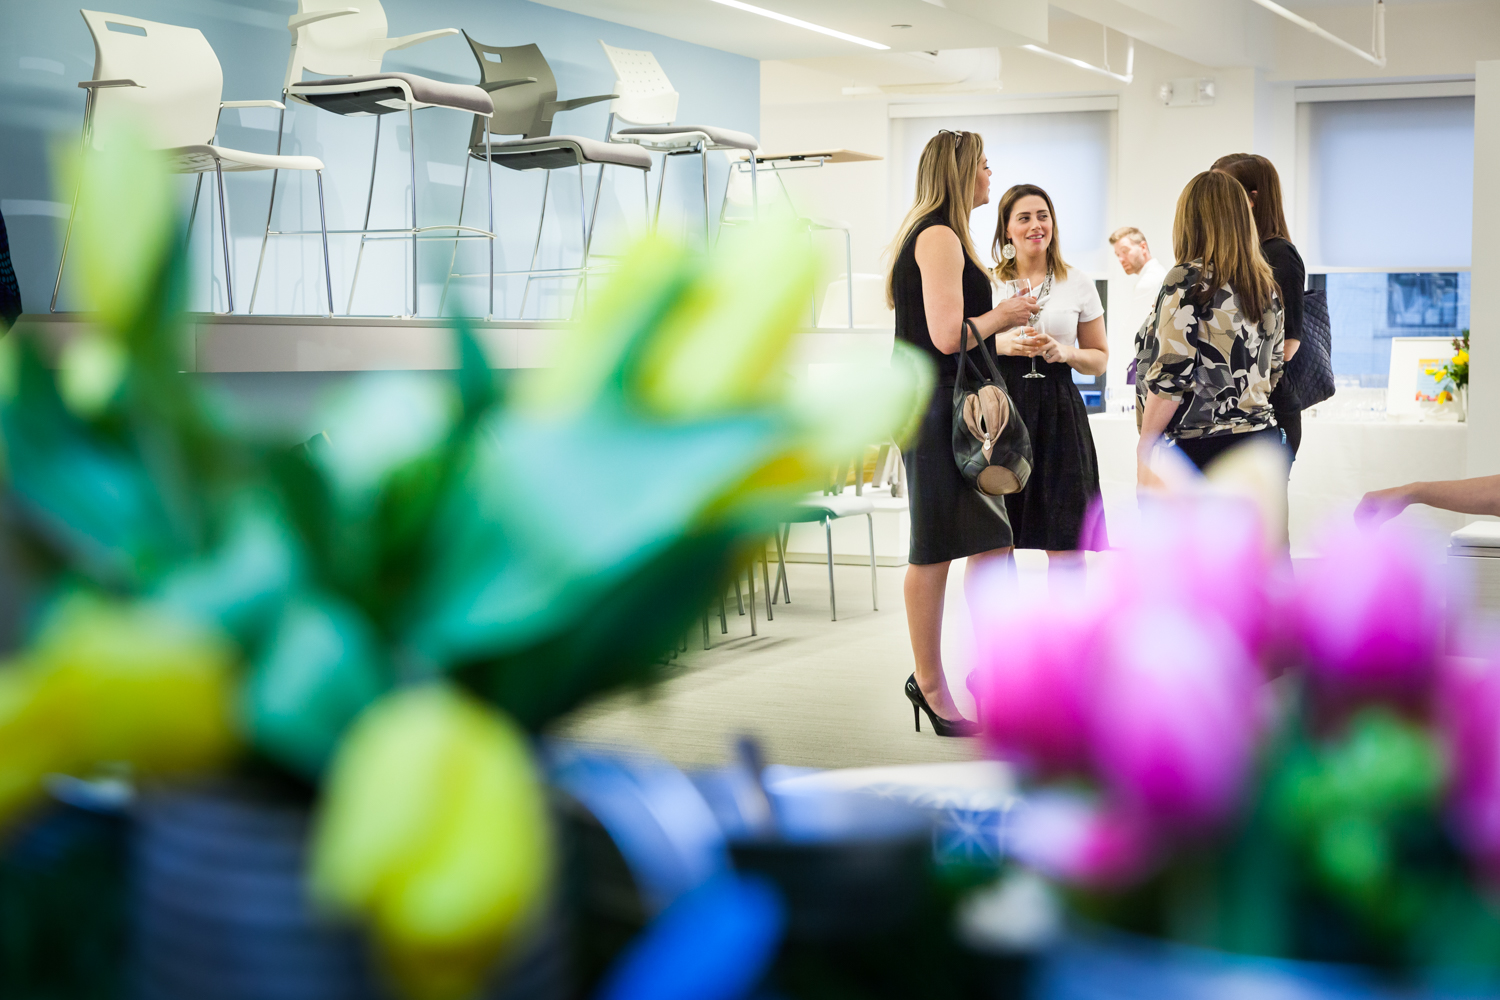 Guests talking at a corporate cocktail party for an article on corporate event planning tips